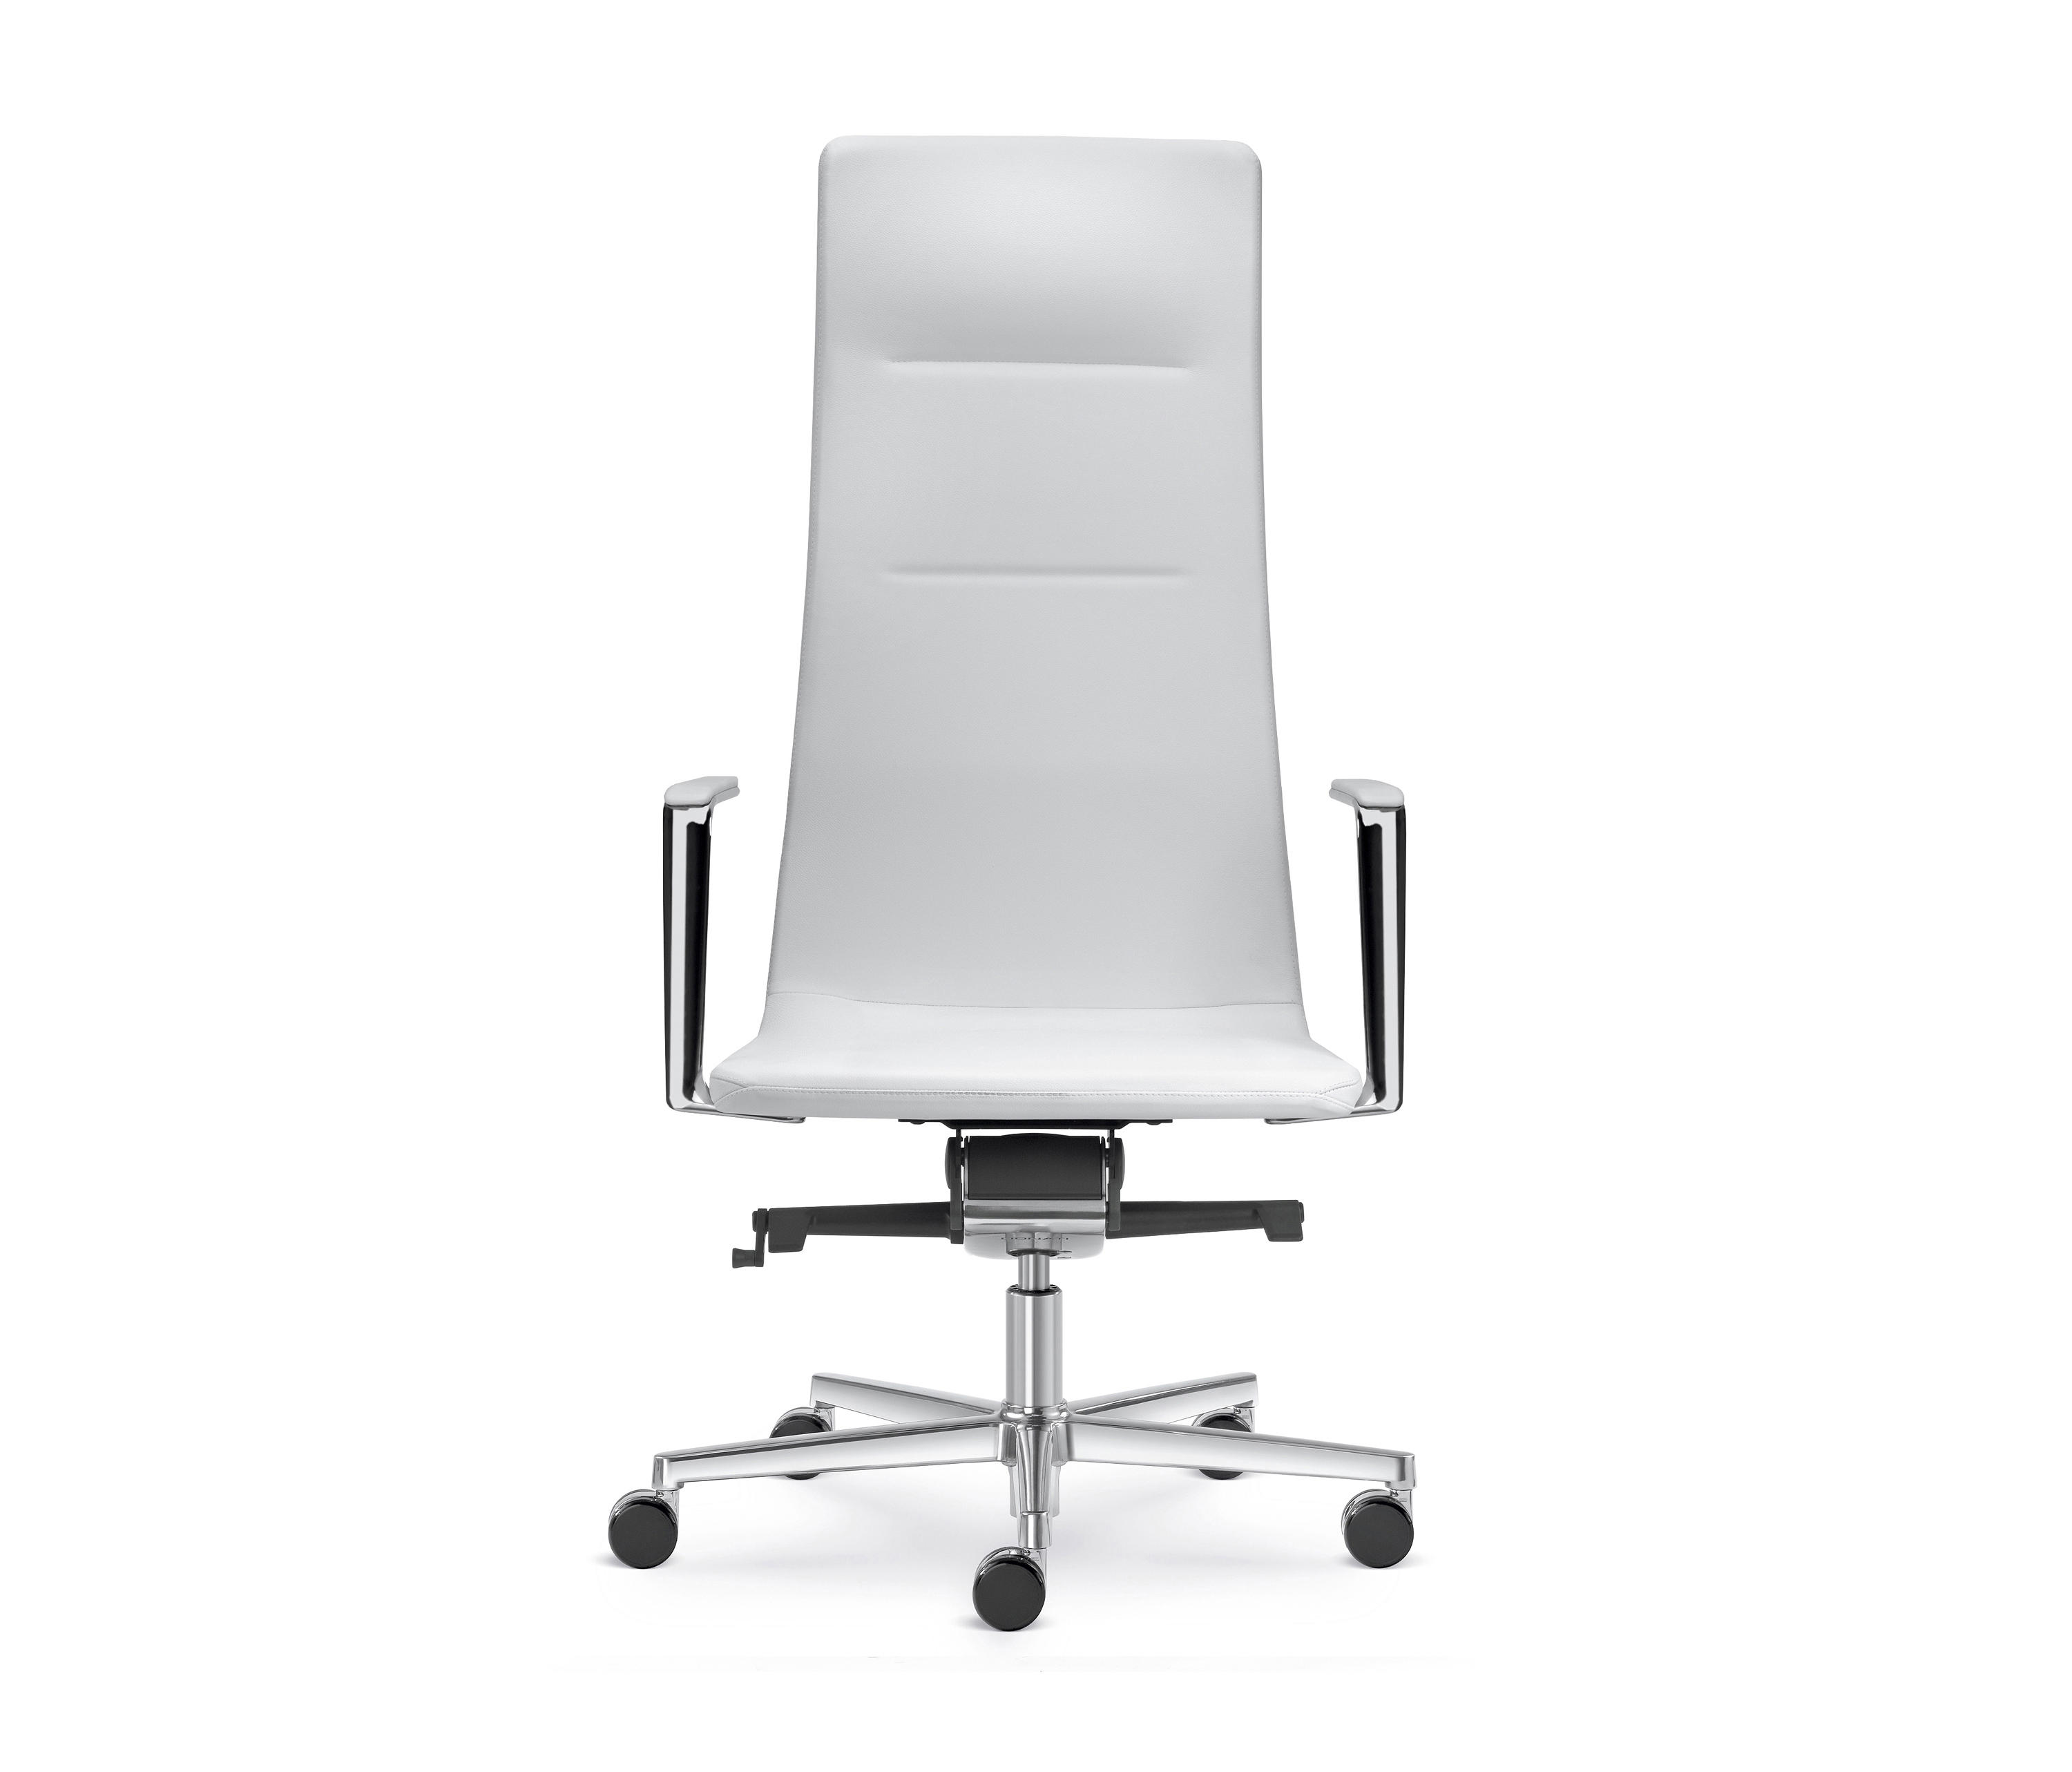 Harmony 820 H Office Chairs From Ld